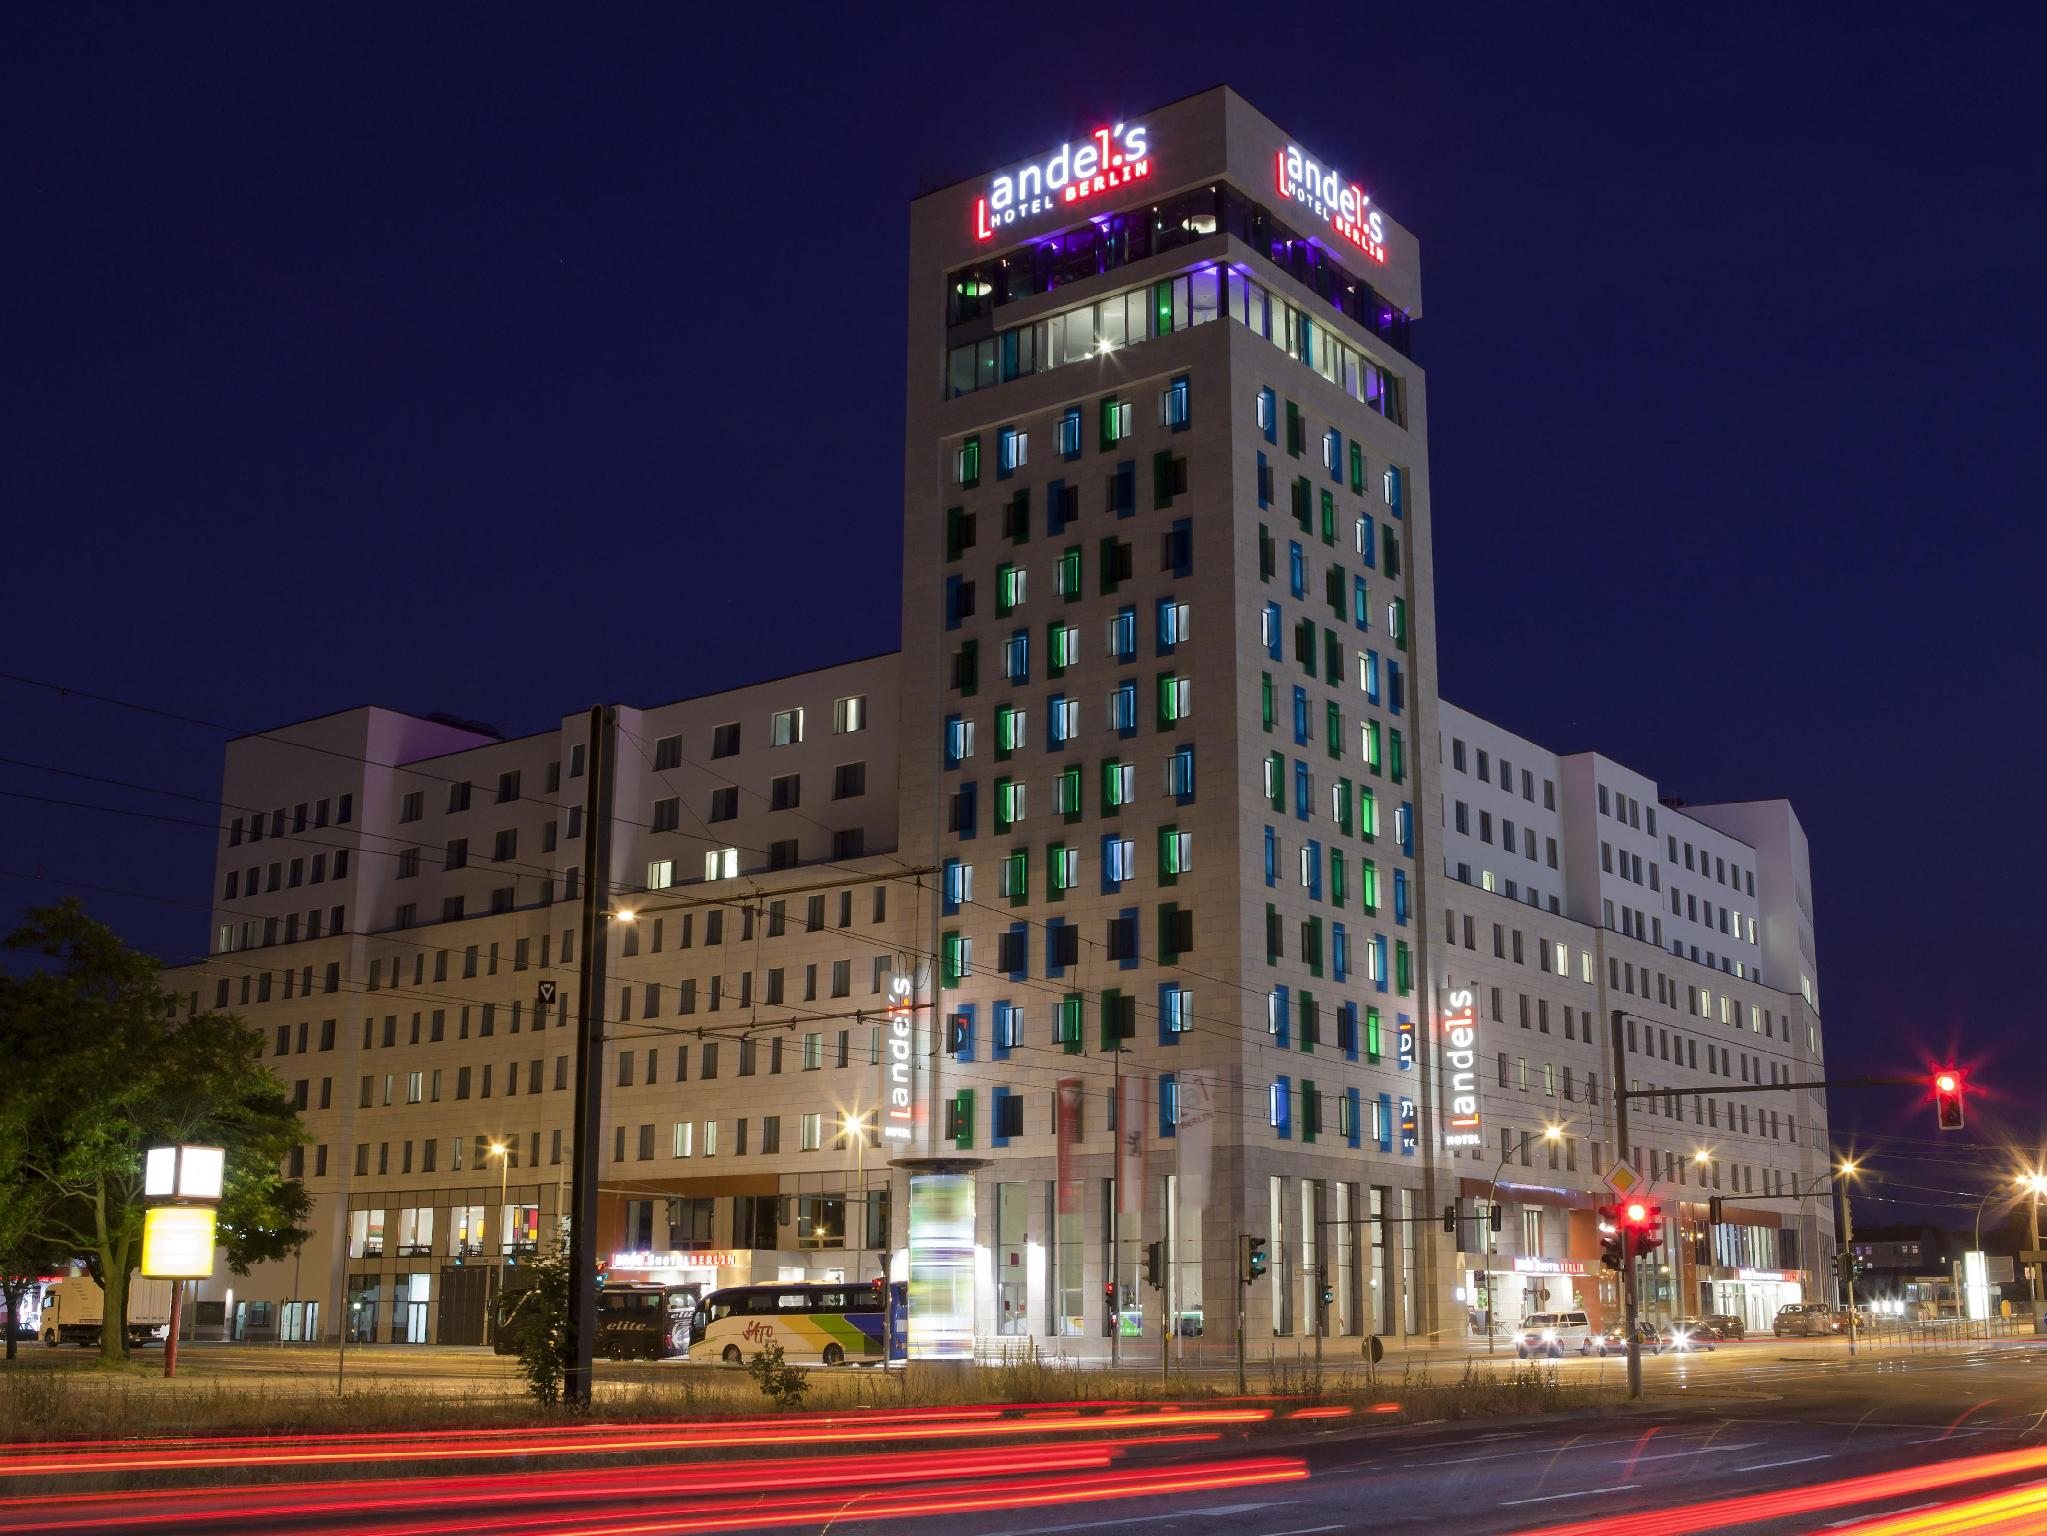 andel's Hotel Berlin, managed by Vienna International Hotels and Resorts Berlin - Aussicht